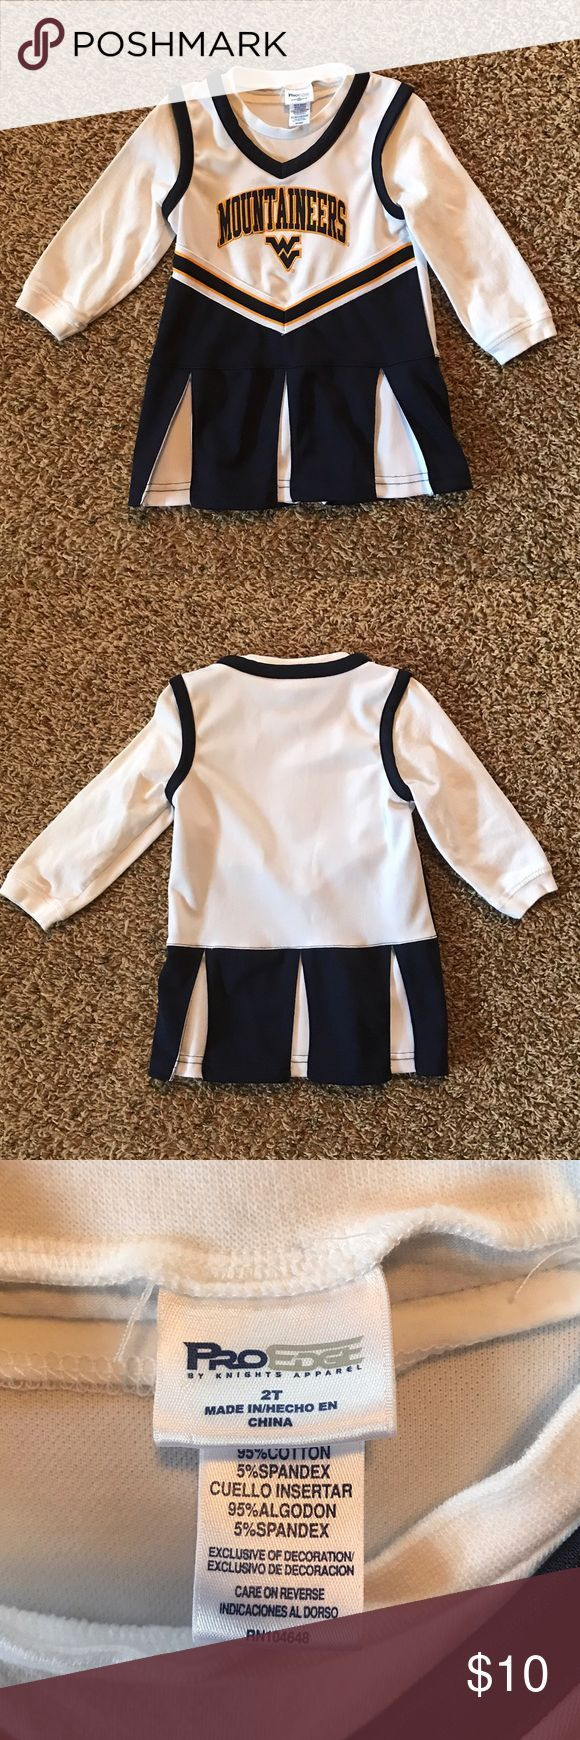 WVU Mountaineers Cheerleader Uniform Dress 2T Sehr guter Zustand. Baumwolle / Polye ..., #Bau... #wvumountaineers